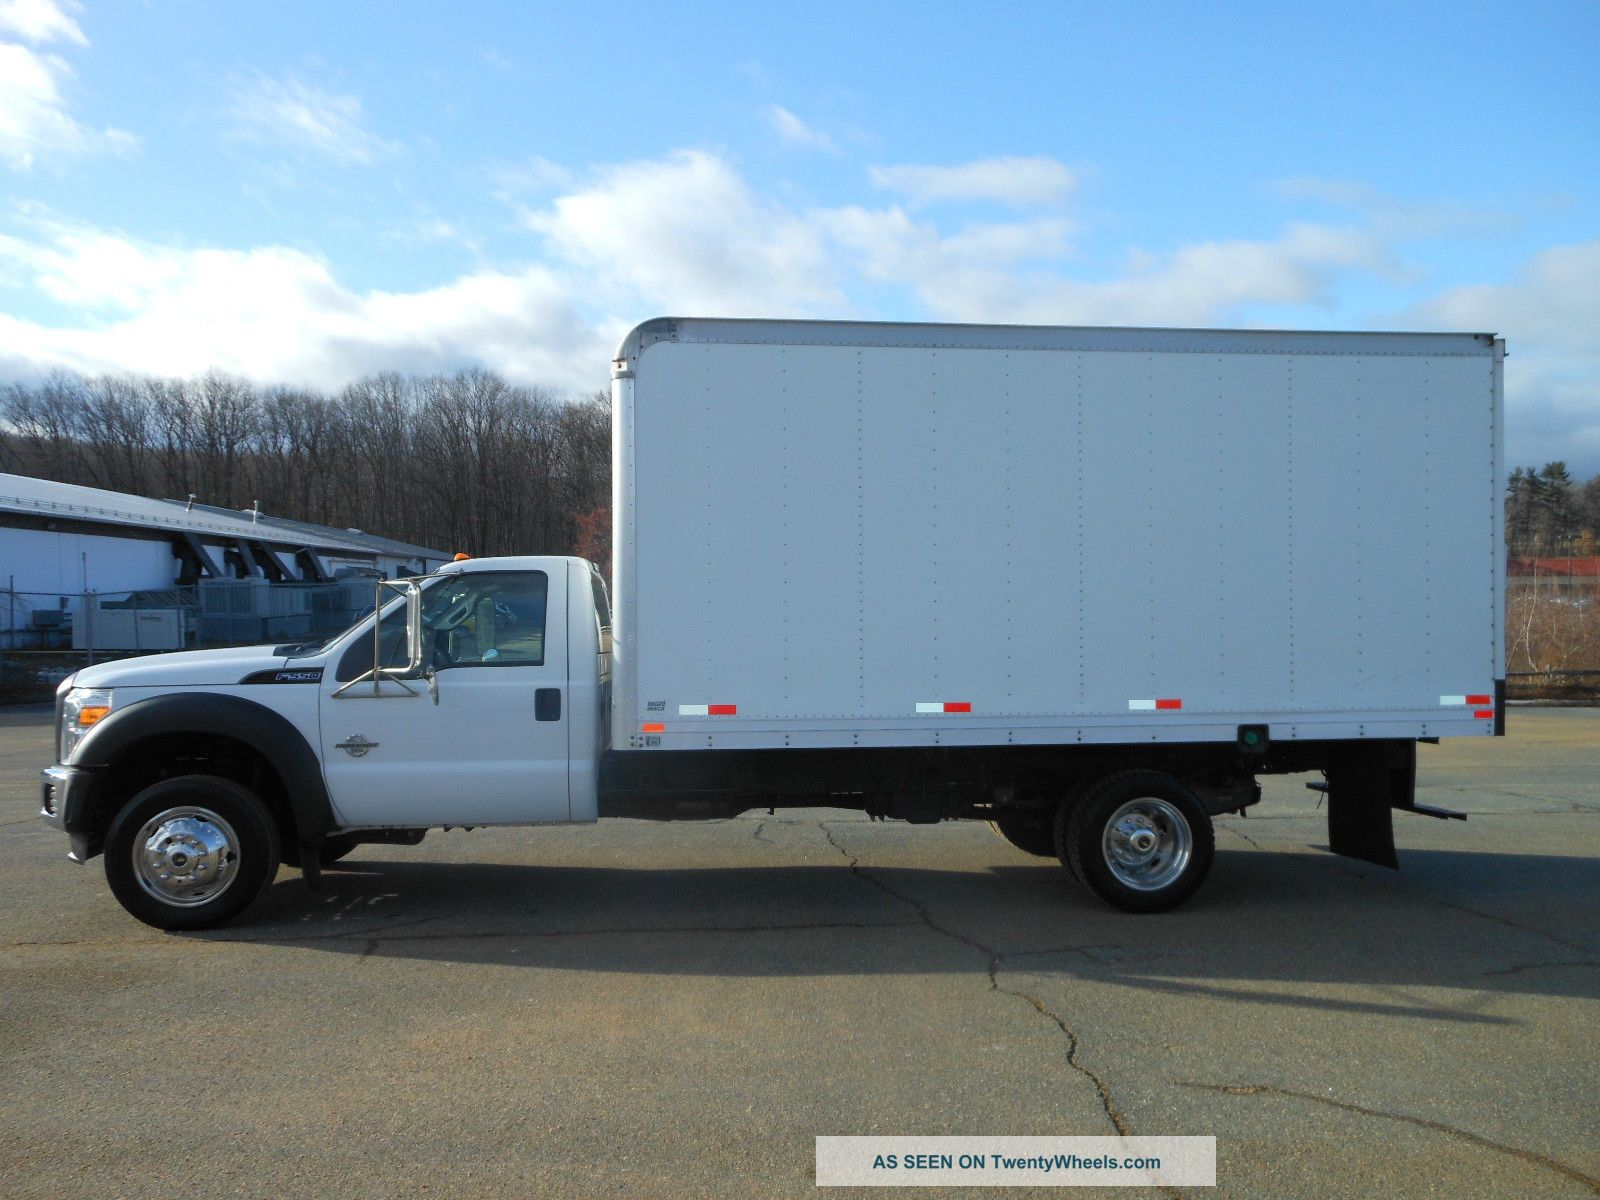 25410 2011 ford f   550 duty xl also 34219 1999 freightliner fld 120 furthermore 15757 16  x7  utilty trailer with costum ladder rack tandem axle with electric brakes moreover 40499 2003 chevrolet c4500 further 3882 1993 peterbilt 377. on semi truck dump trailers specs